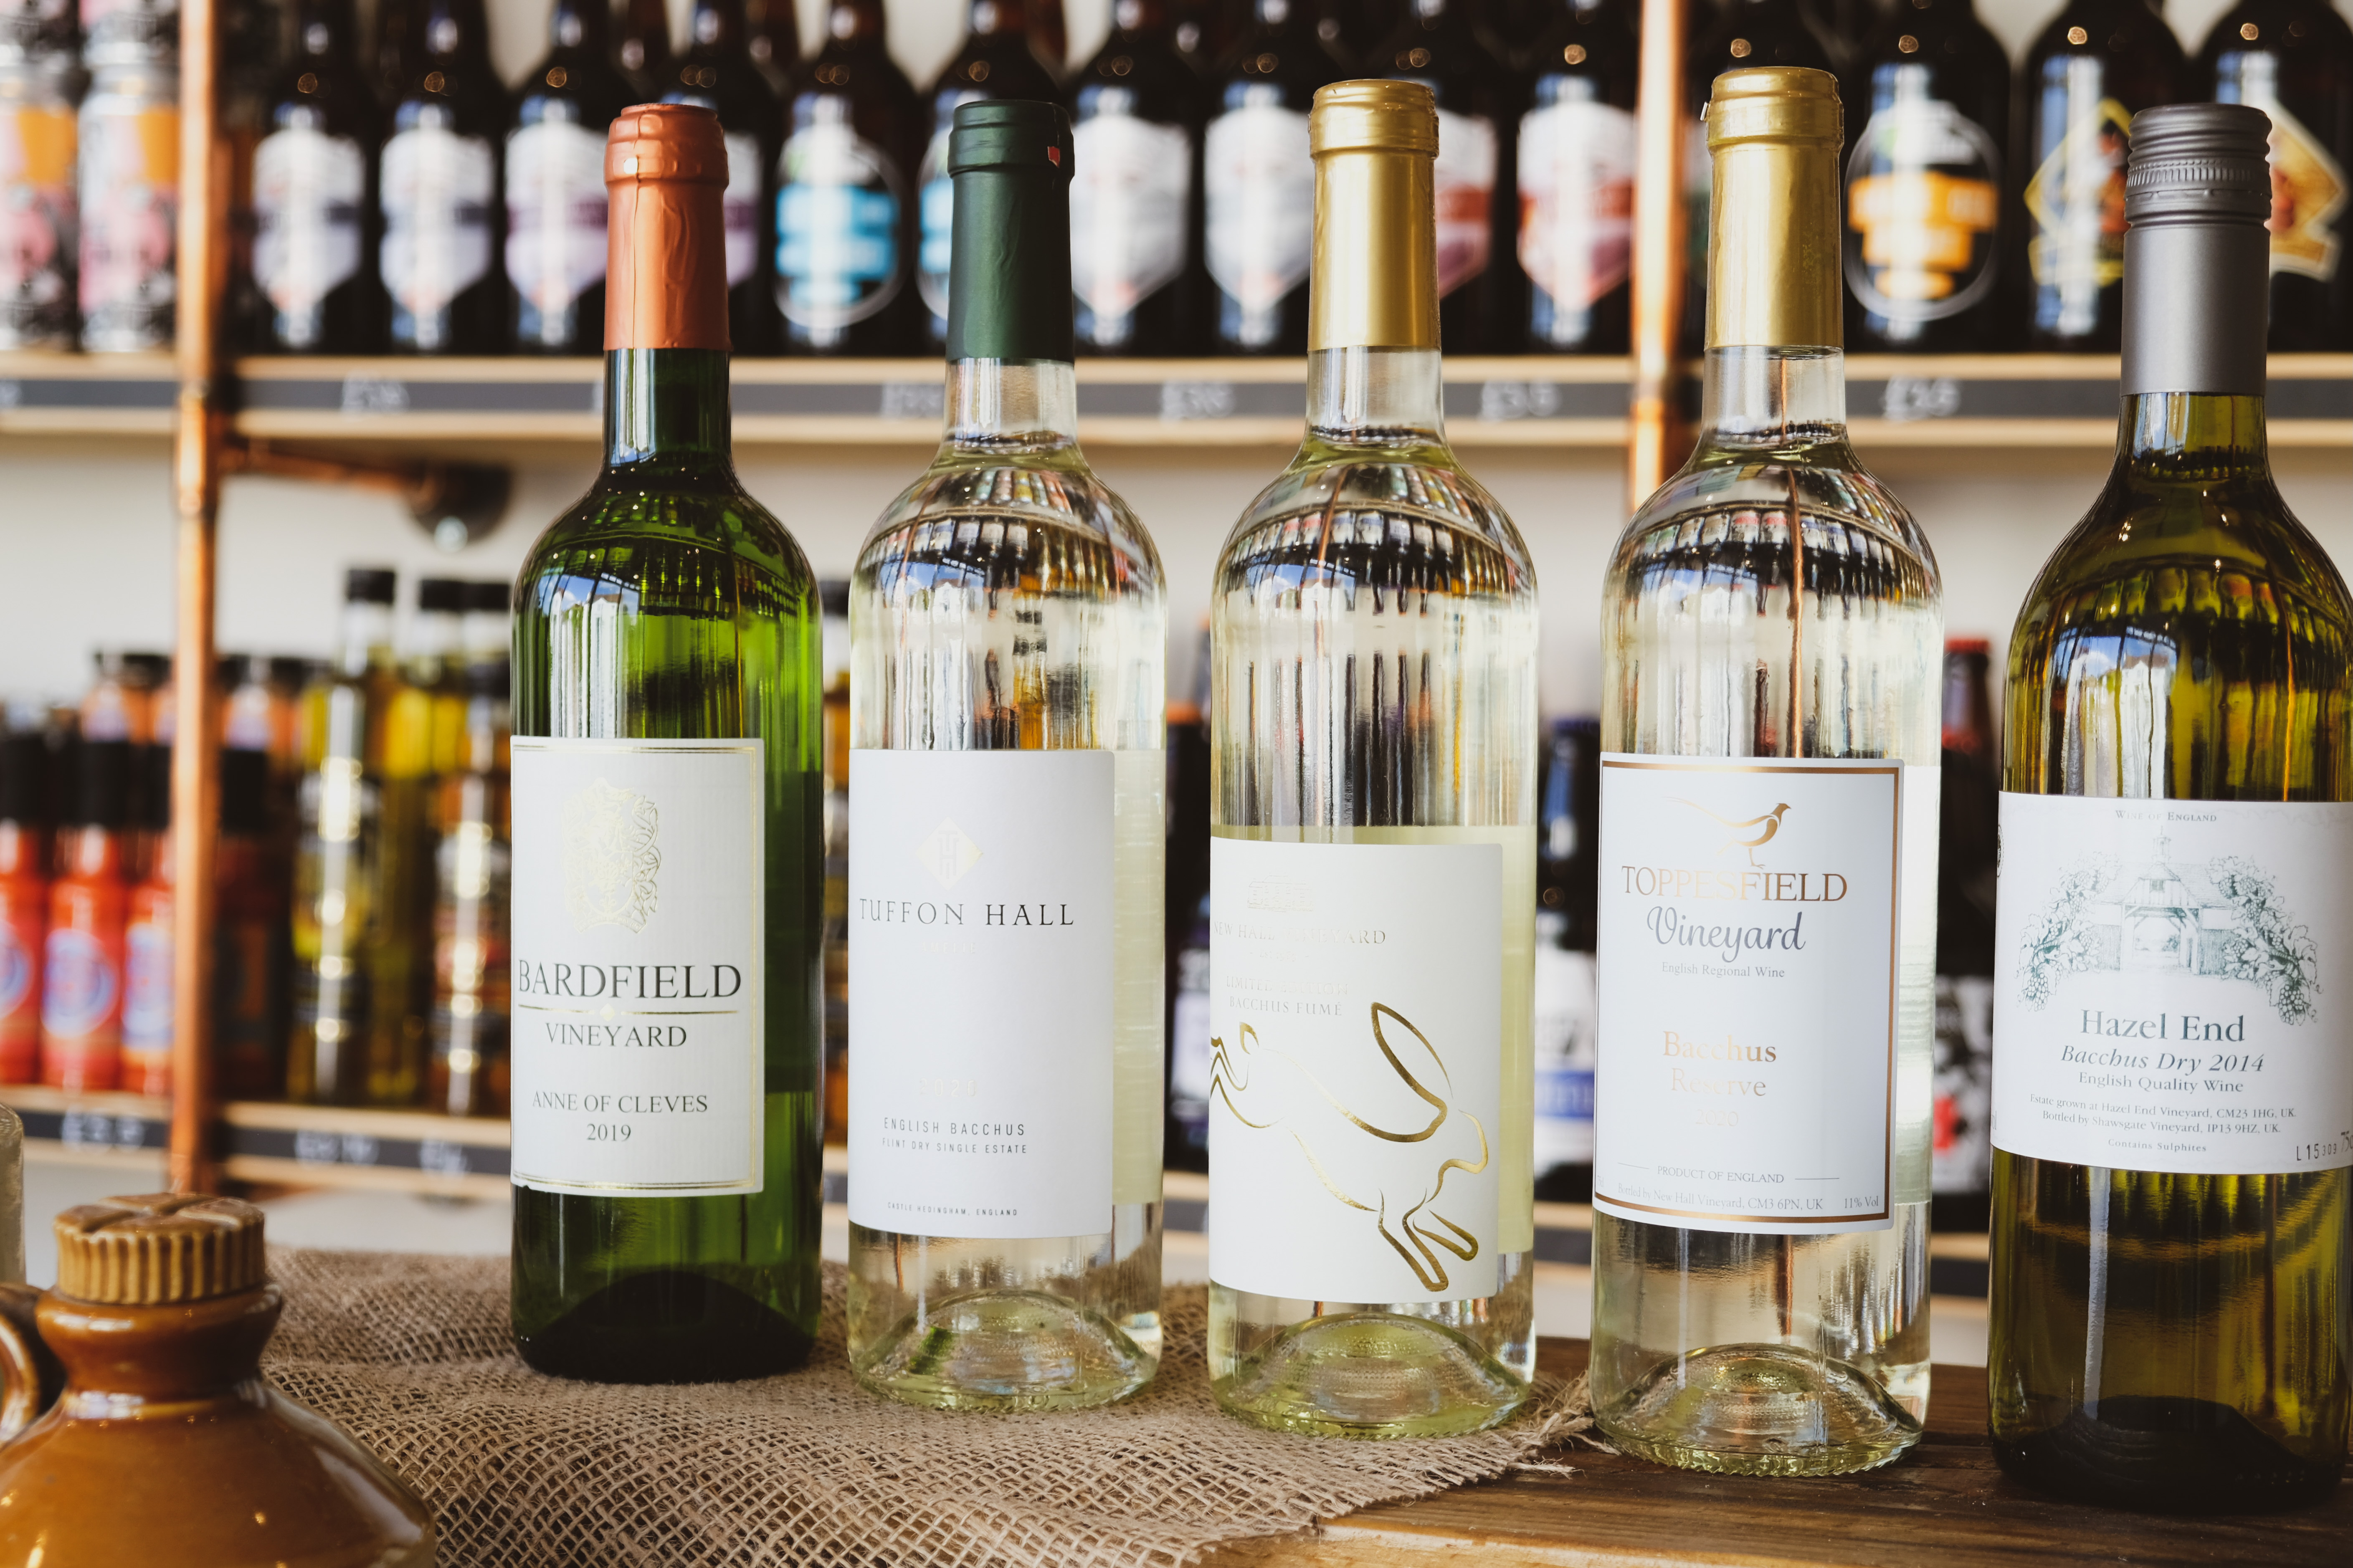 Essex Produce Co. white wine selection in Kelvedon, Essex.